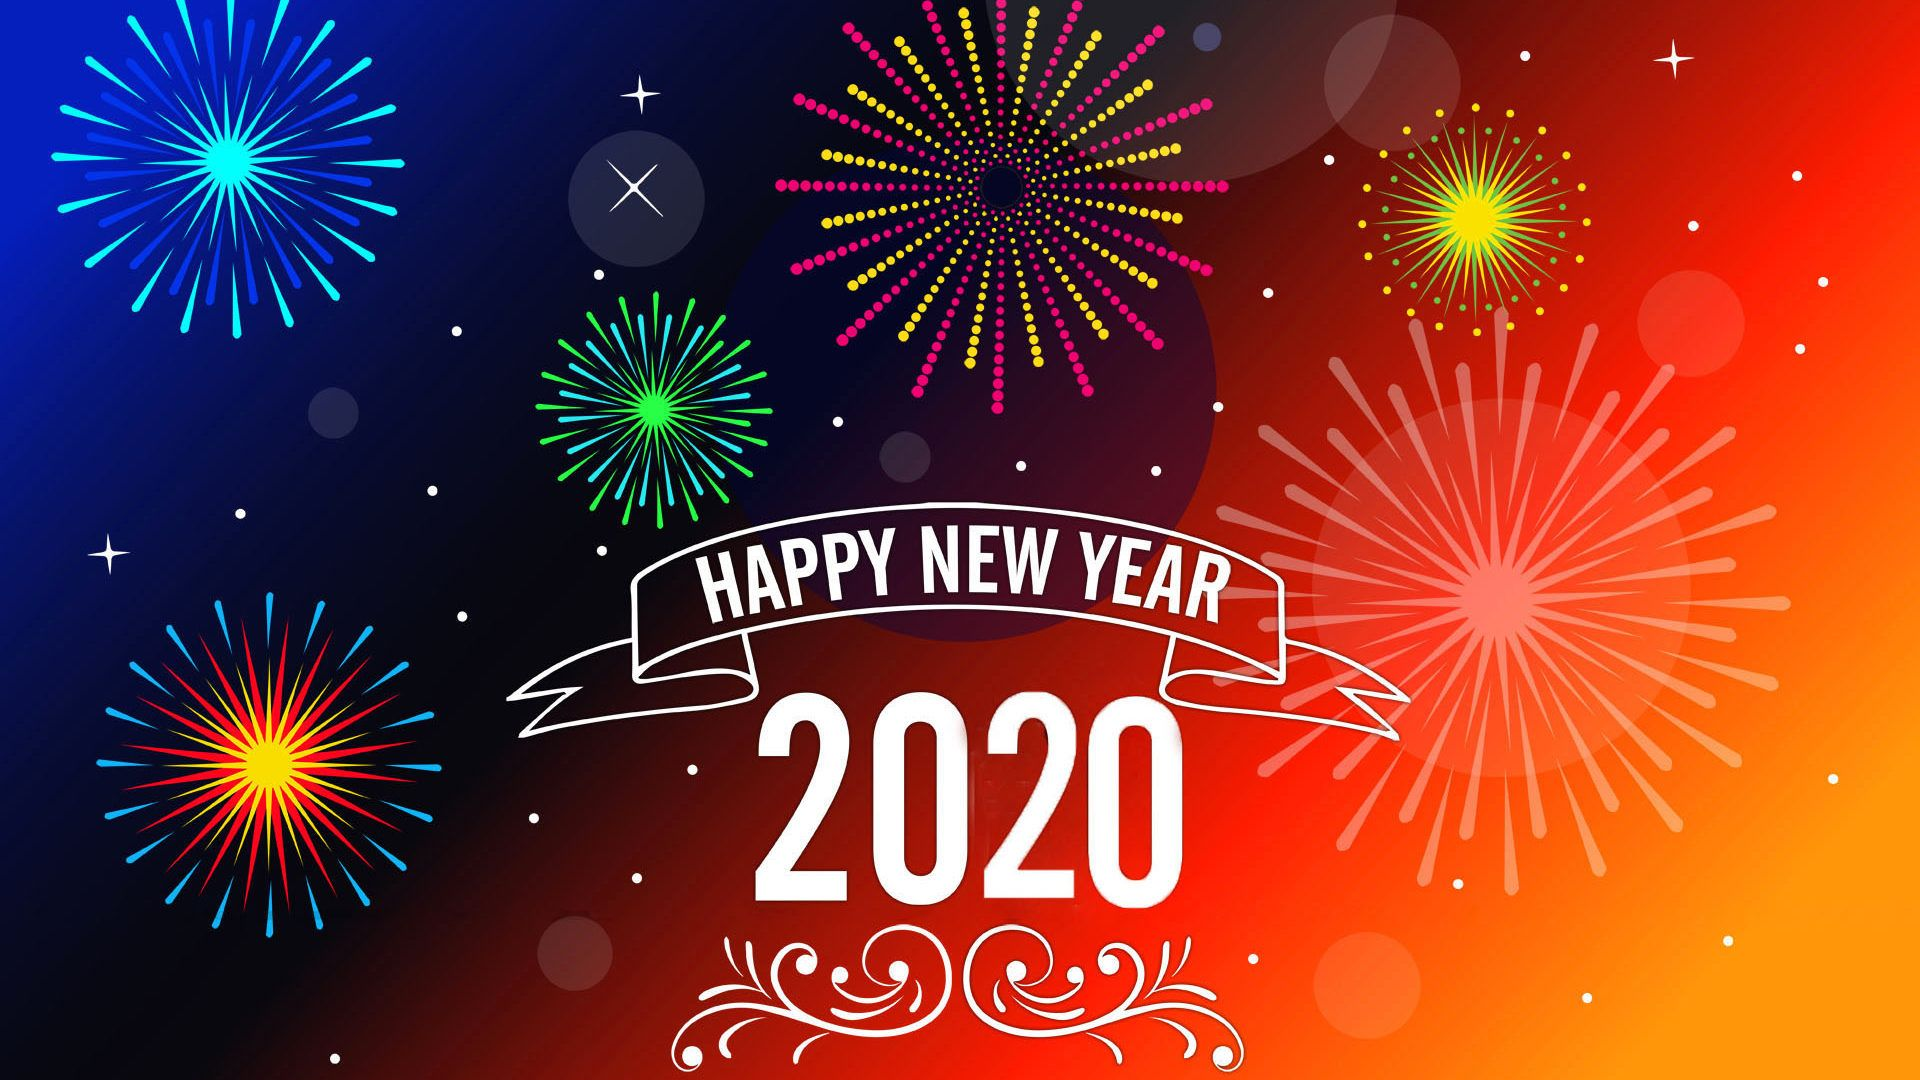 Free Download Happy New Year 2020 Wallpapers 30 Images